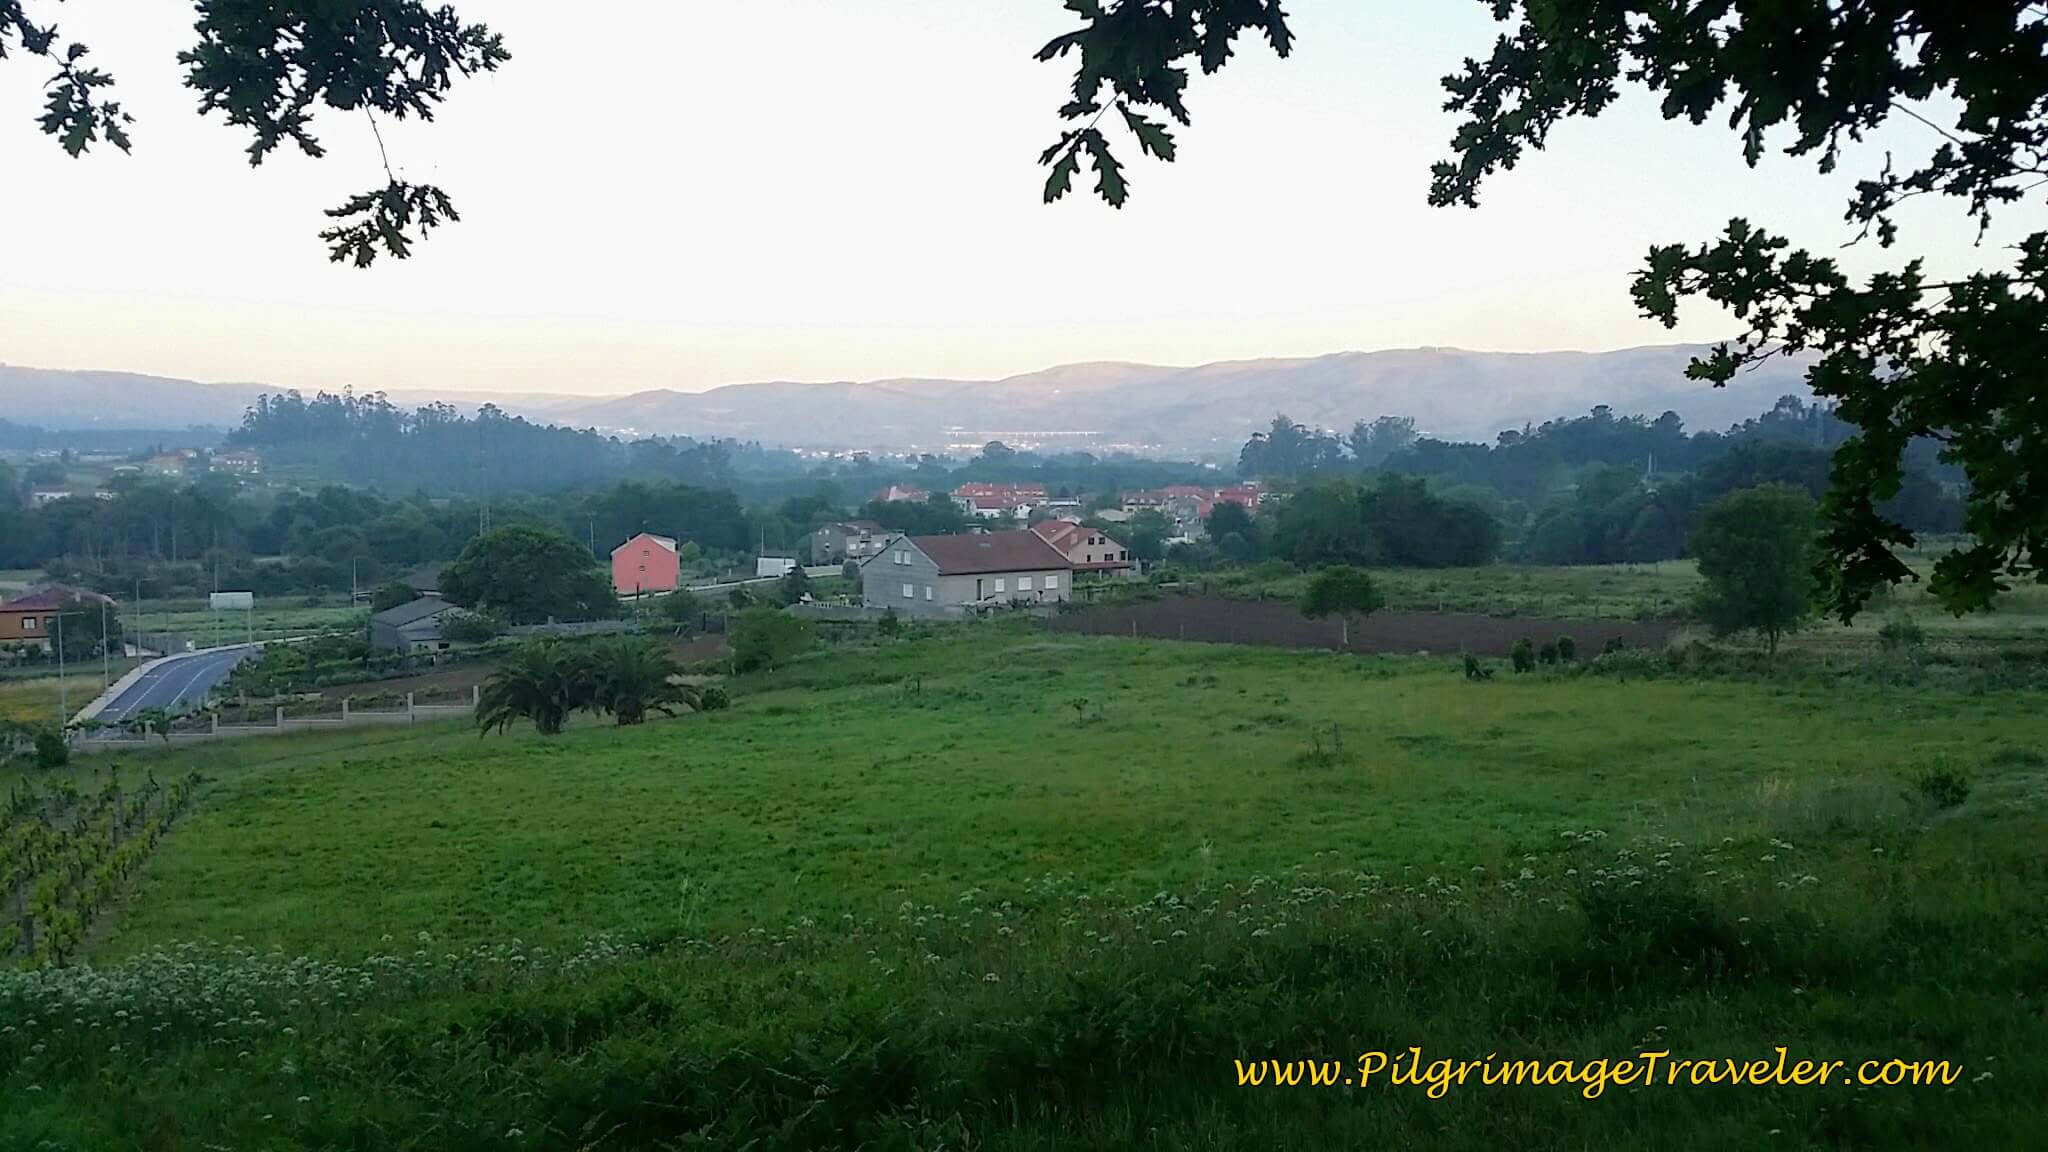 Countryside View in Early Morning Light on Day Twenty-Four, Camino Portugués